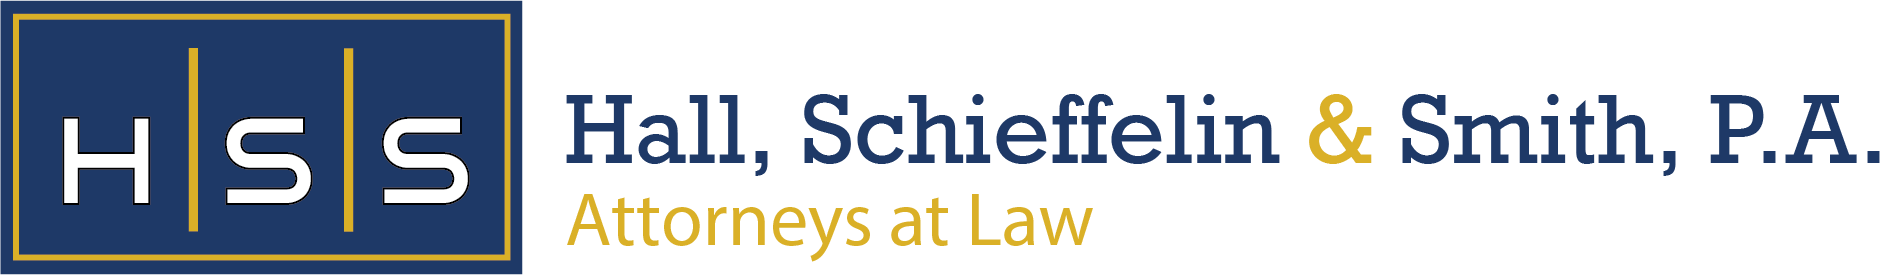 Hall, Schieffelin & Smith, P.A. Attorney at Law